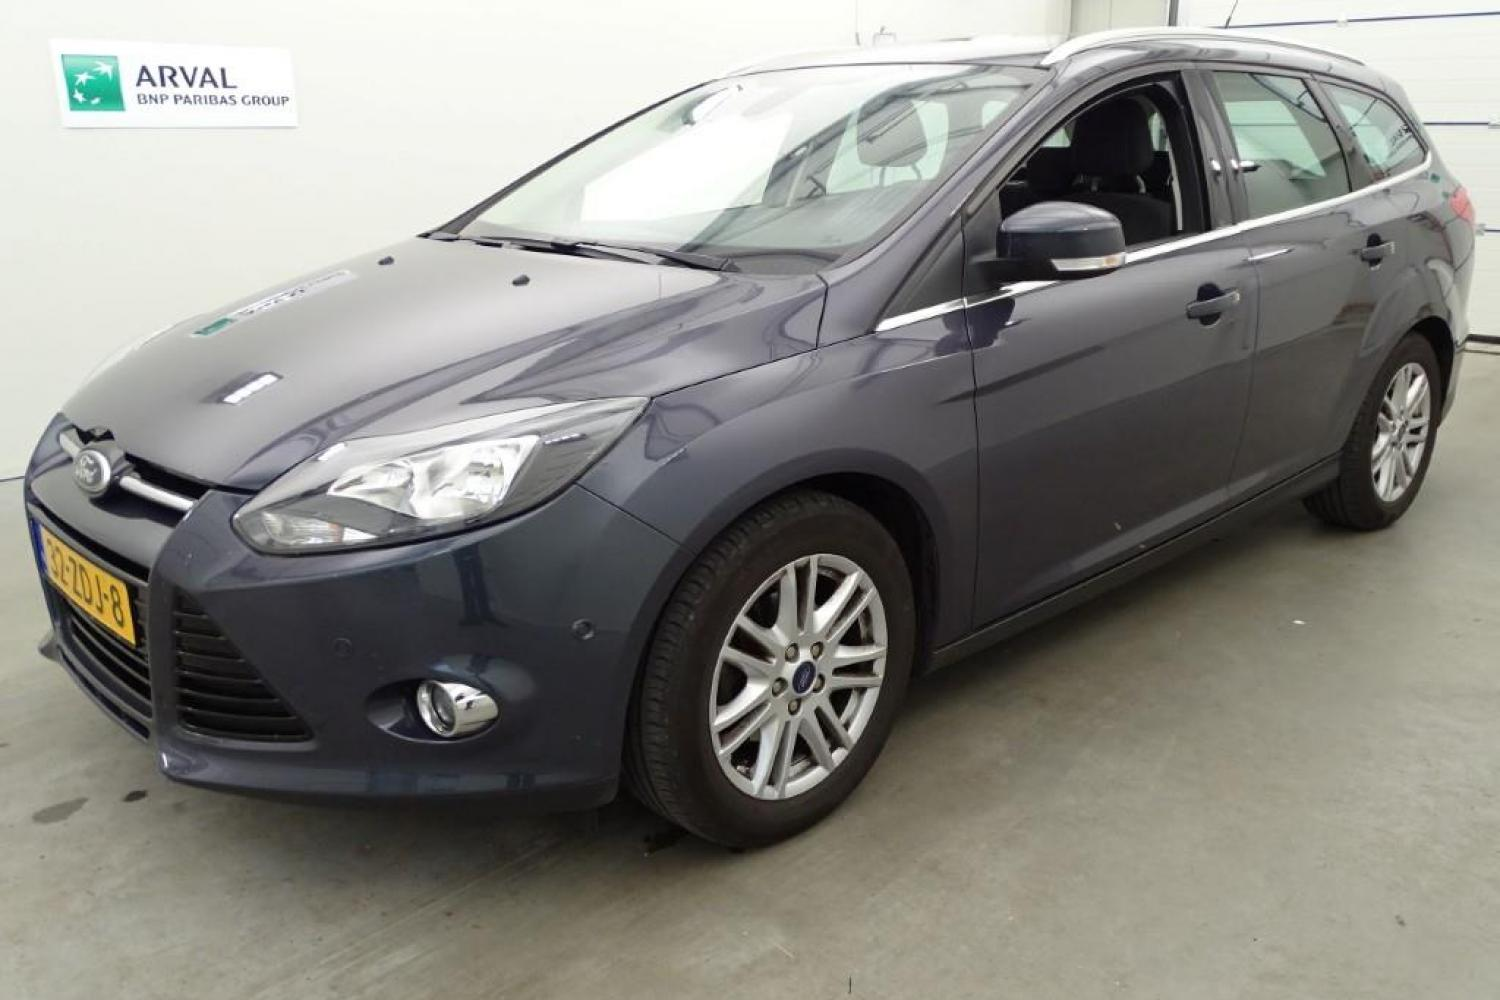 Ford Focus Wag.1.0 EB 125 Lease Tit.